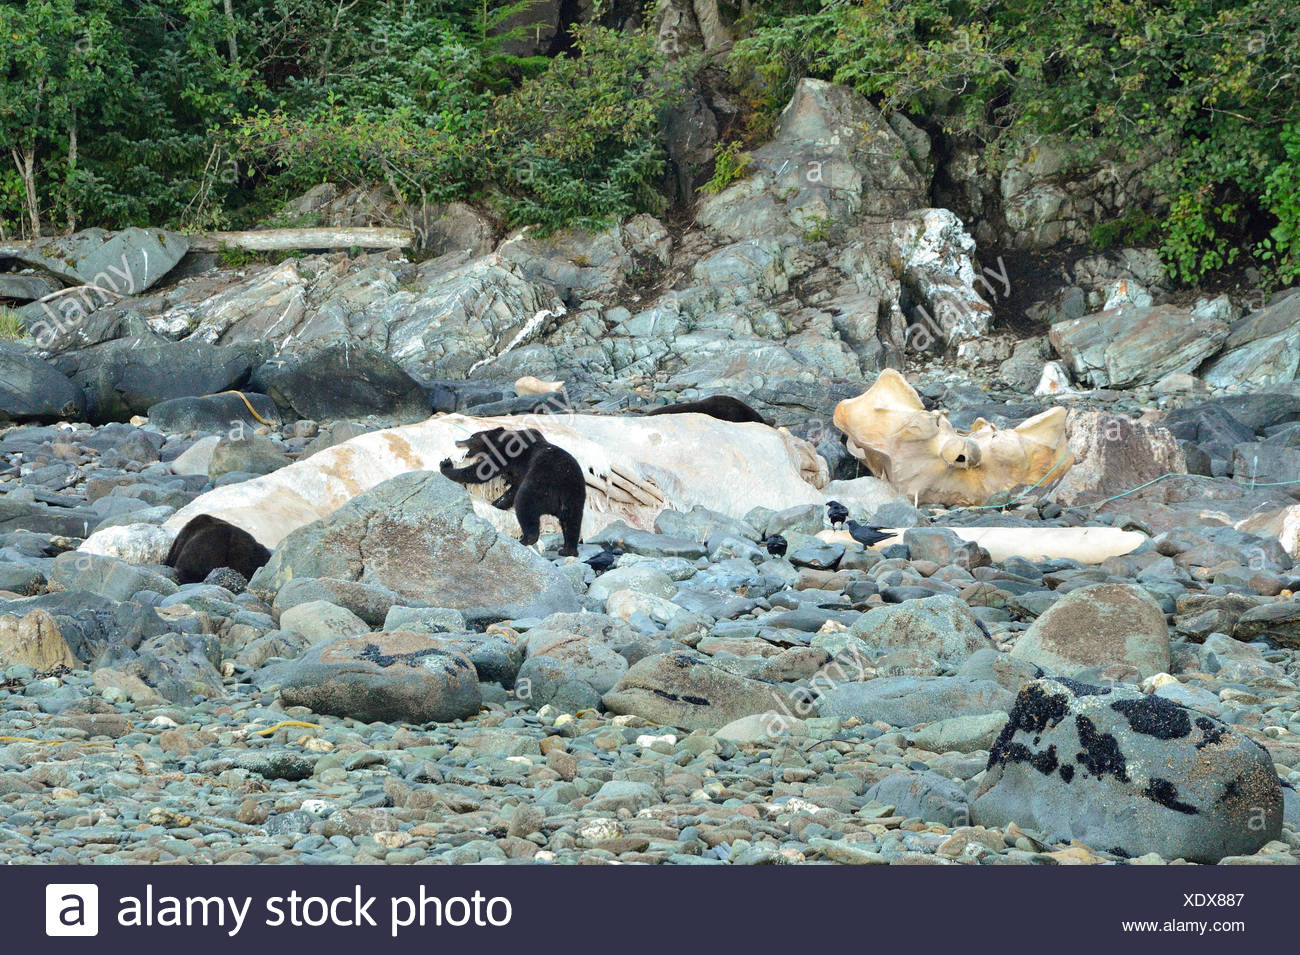 Grizzly bears consume the carcass of a dead beached humpback whale on a rocky shoreline in southeast Alaska. - Stock Image